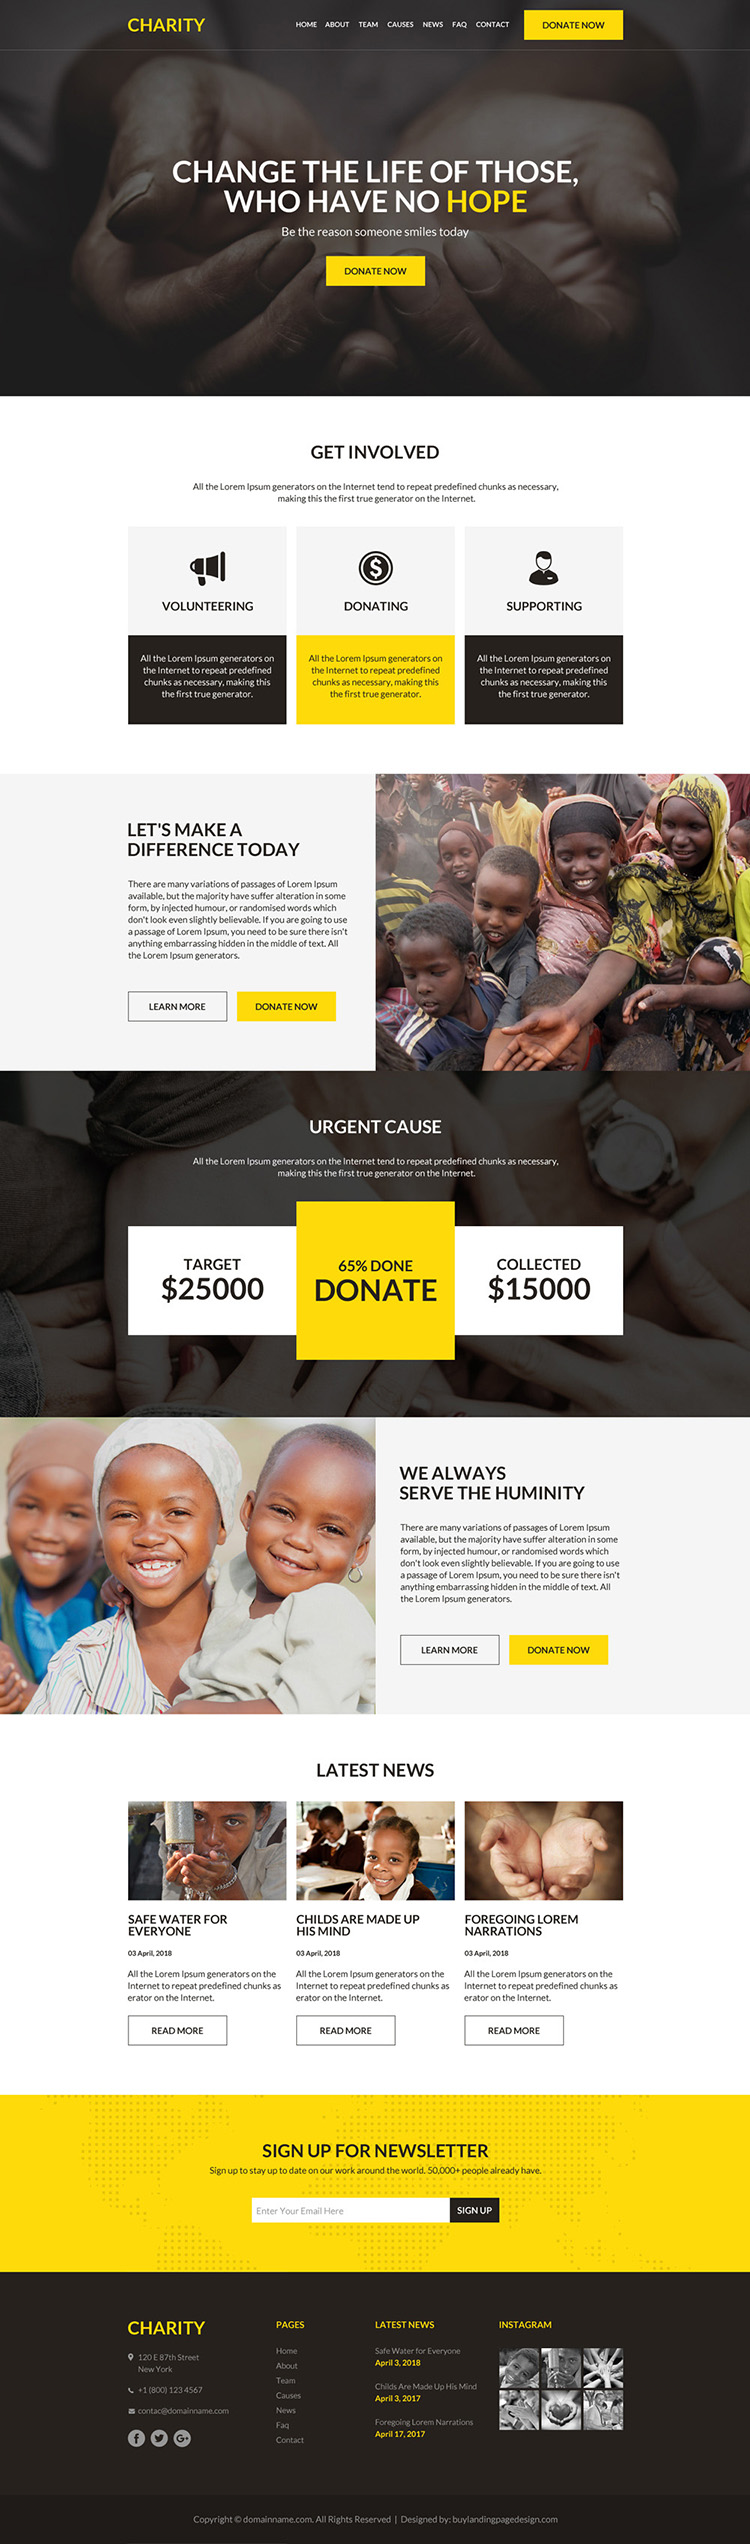 charity and donation responsive website design